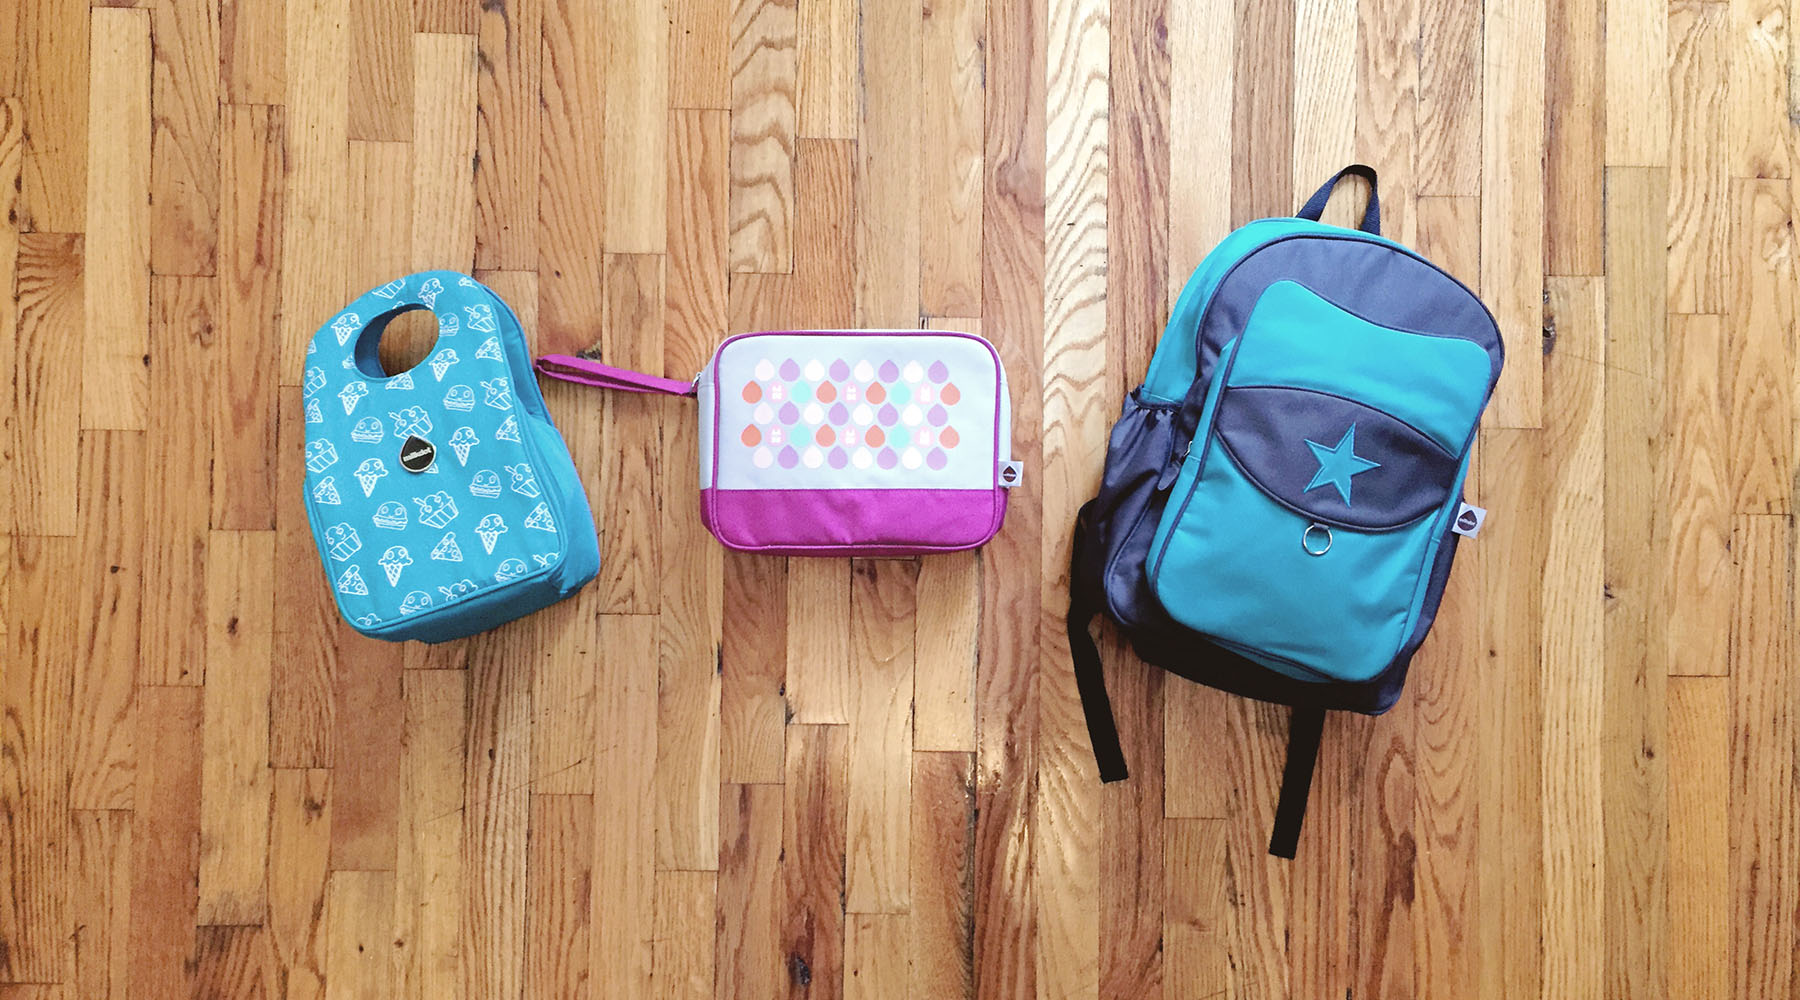 Stöh Insulated lunch tote, Popdots Go Pouch, Top Kat backpack